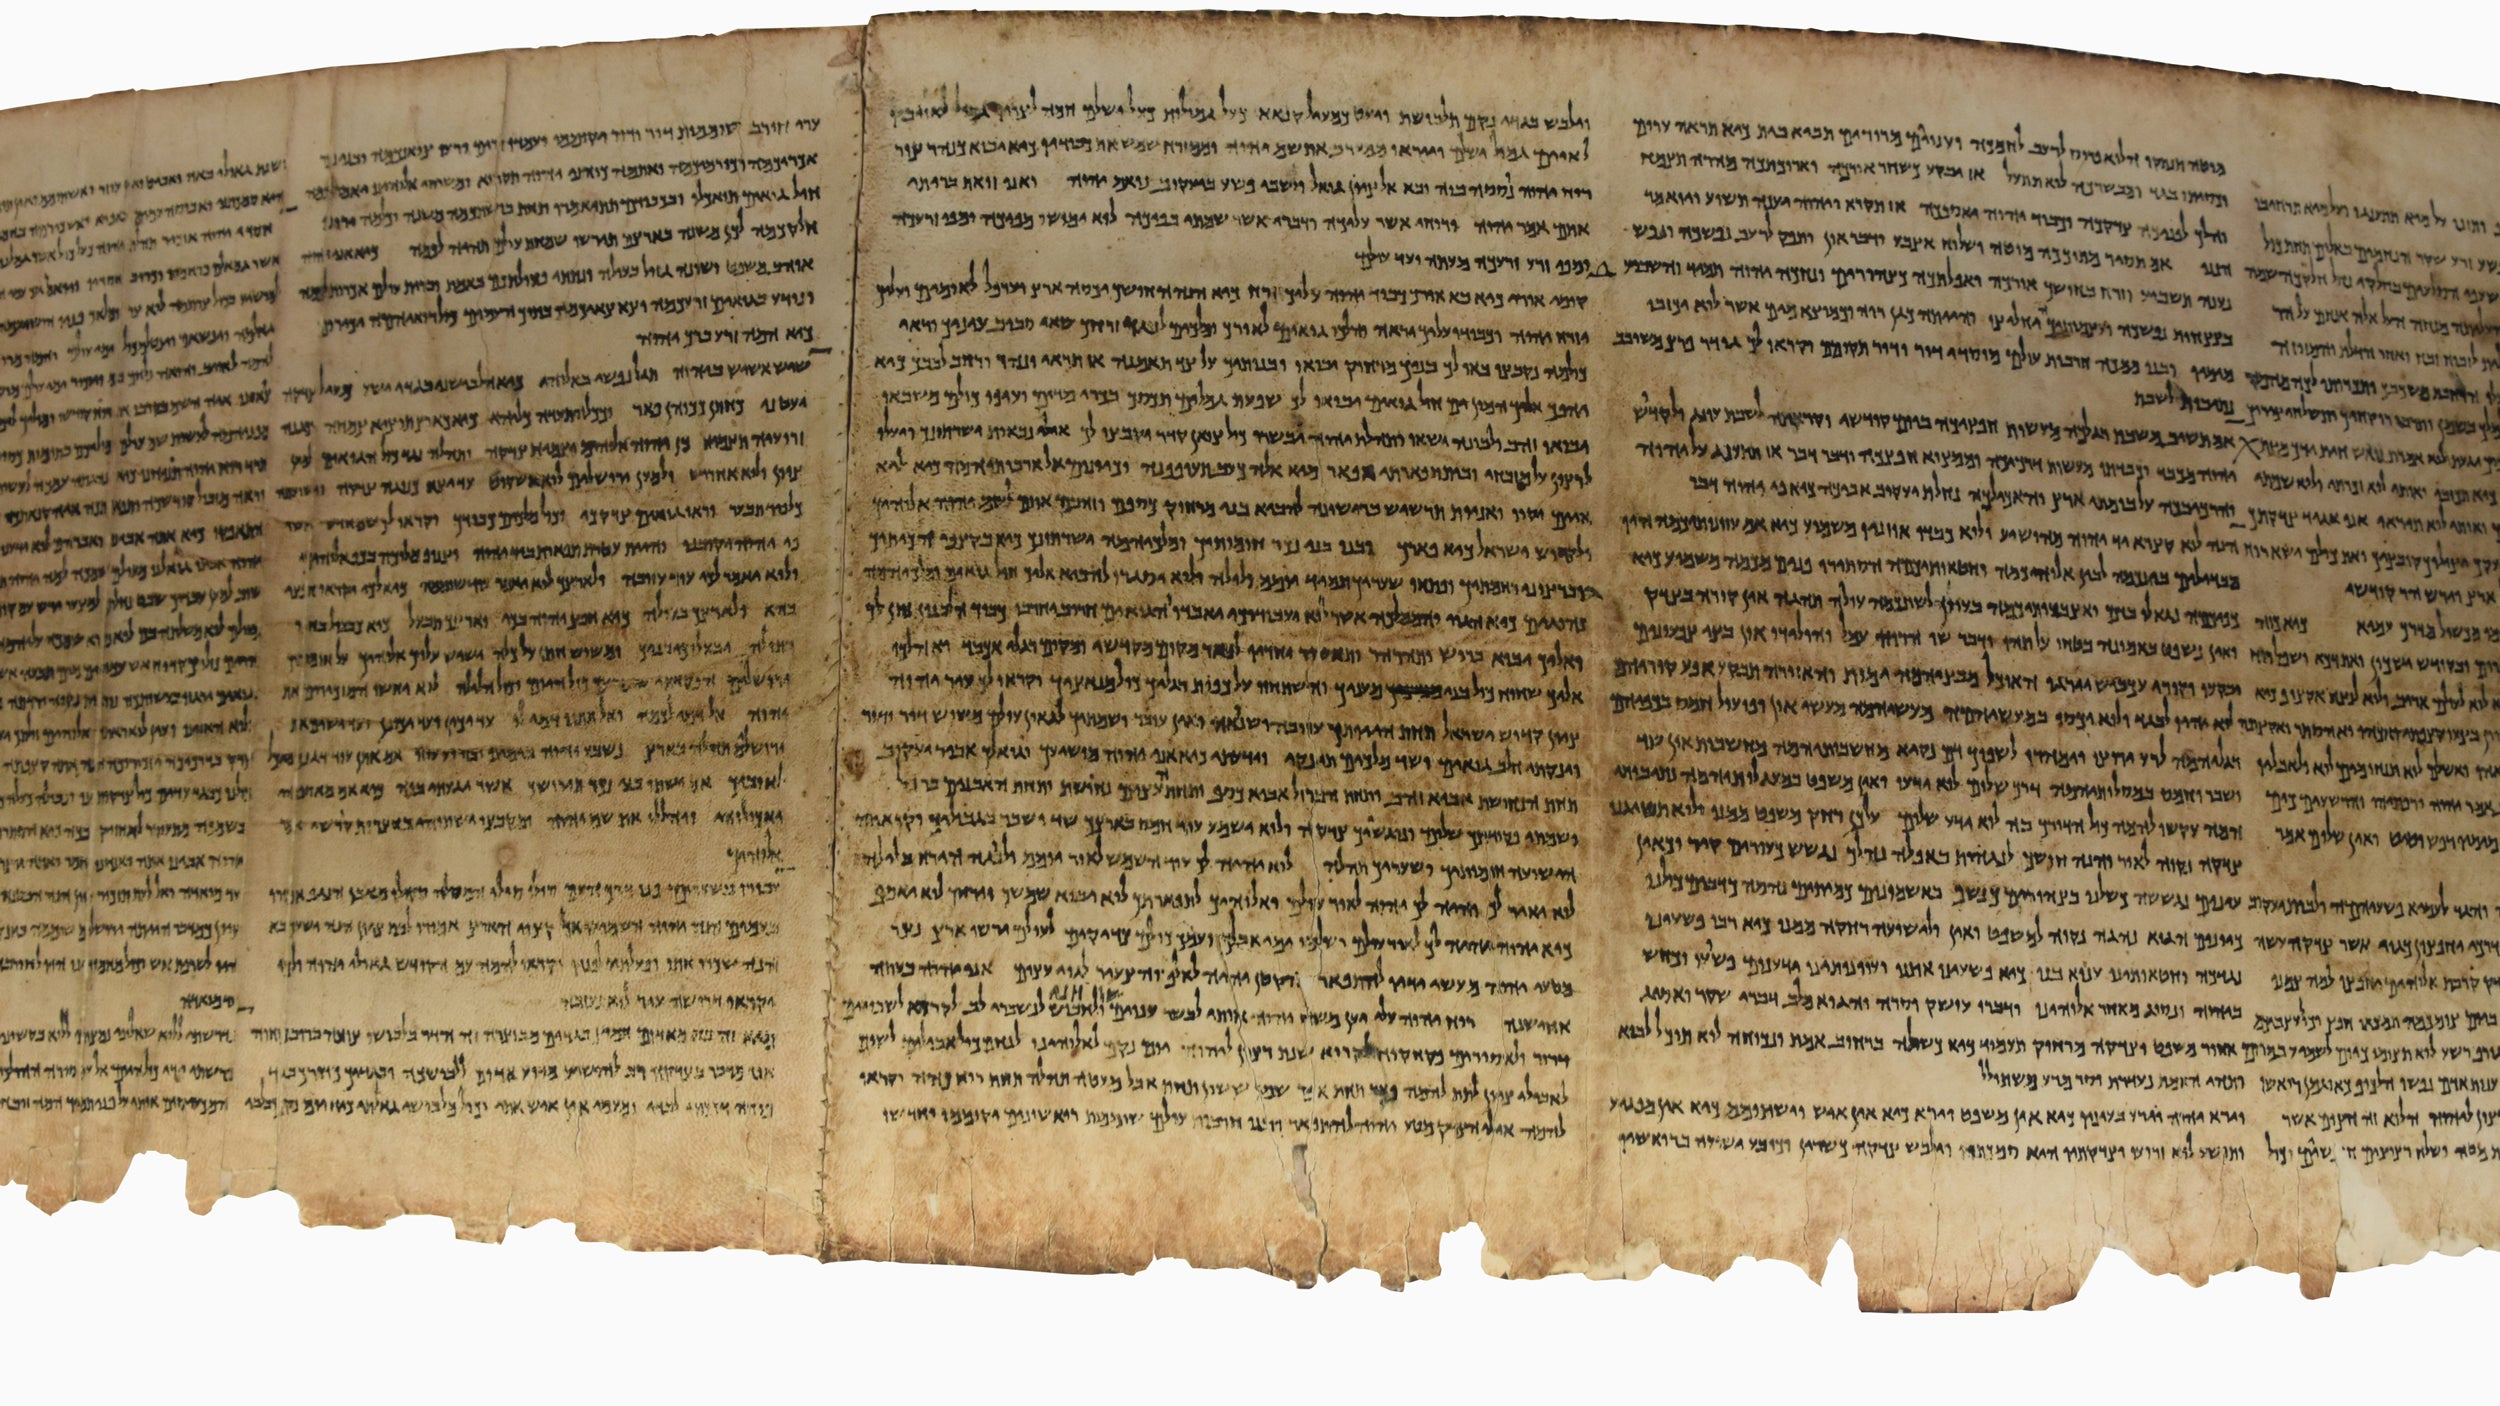 Radcliffe scholar seeks the oldest Bible in the world